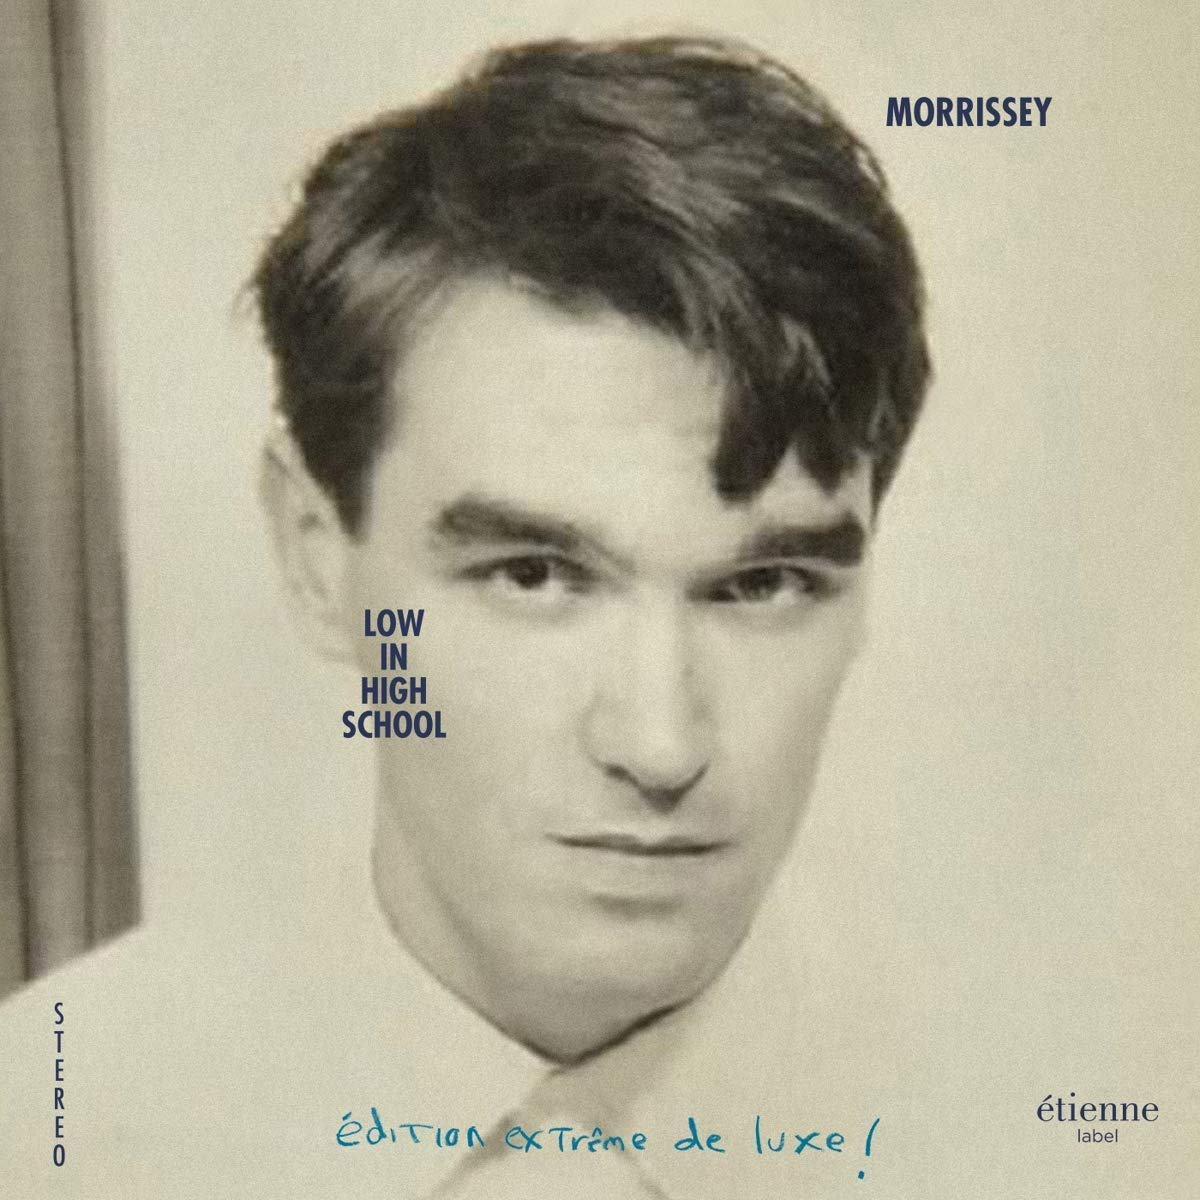 I Didn't Realize You Wrote Poetry: Morrissey To Release An Album Of Covers